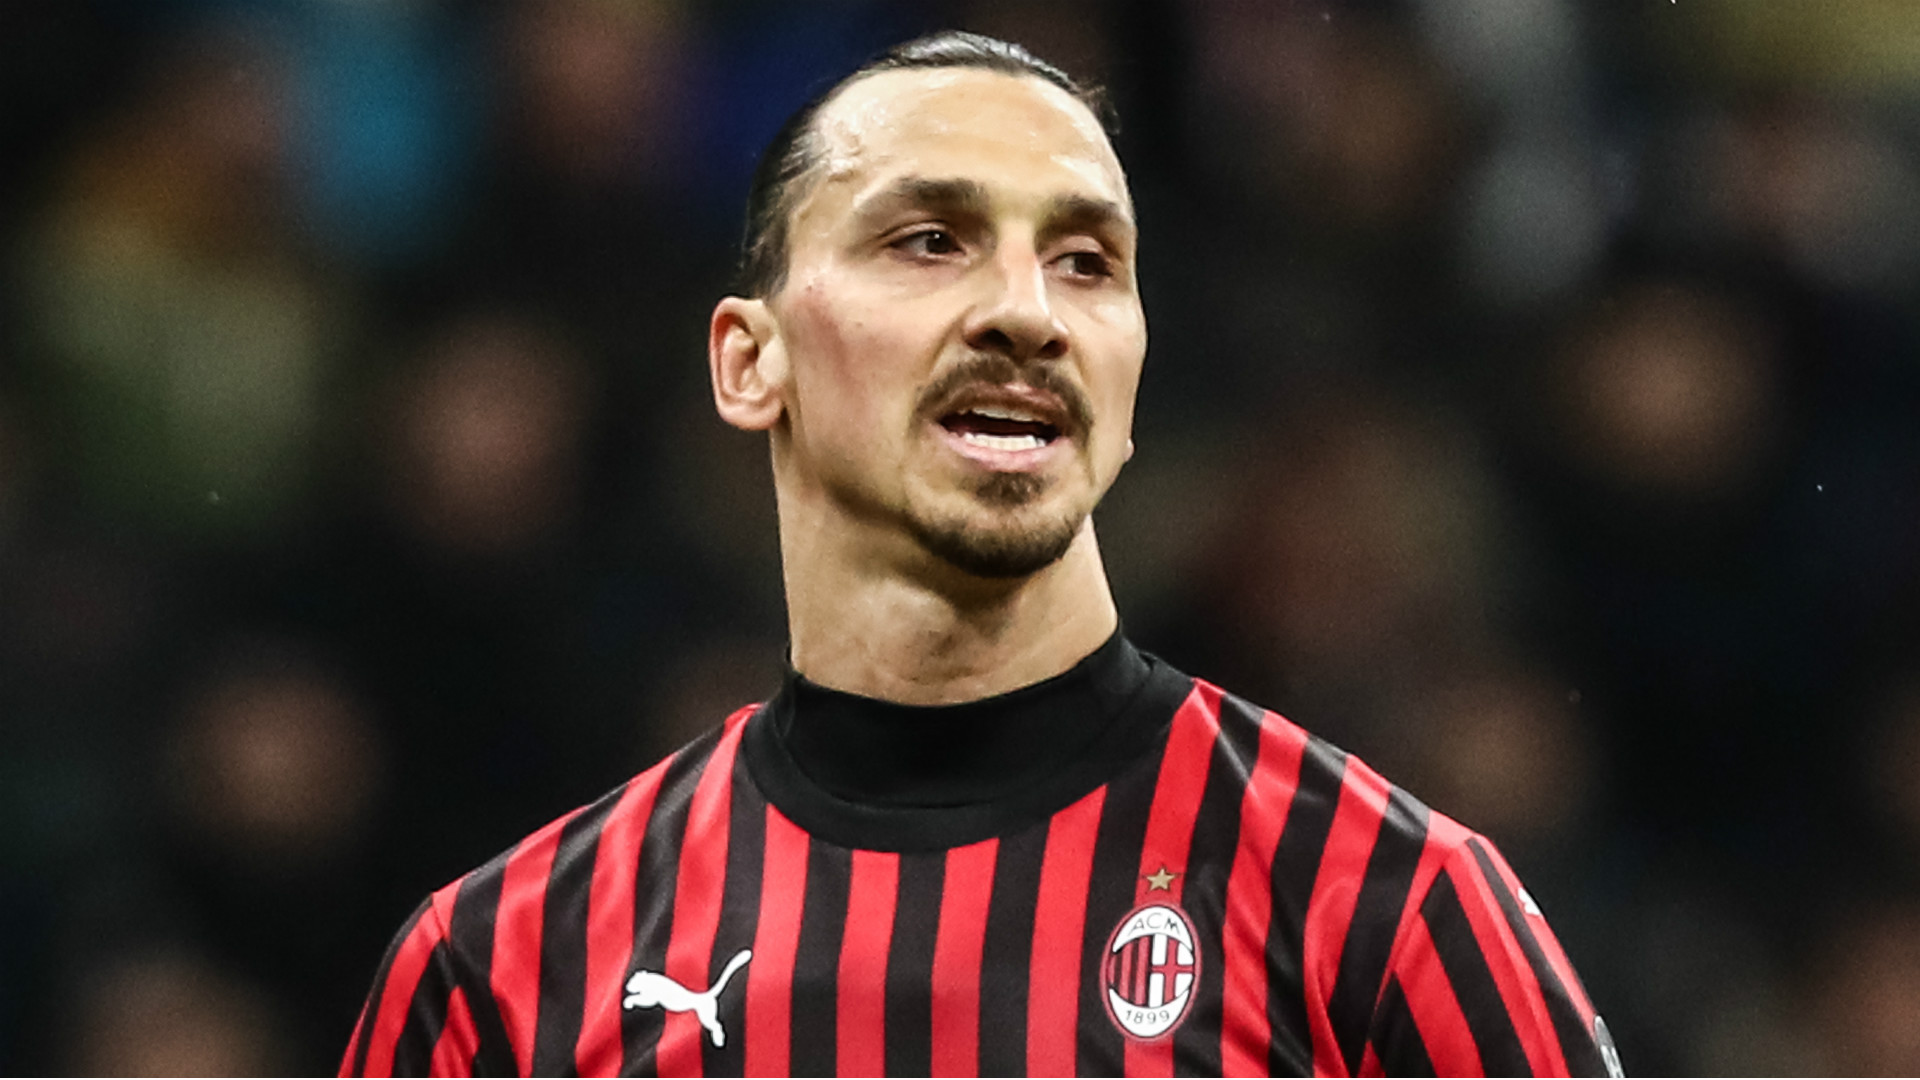 Ibrahimovic could sign for Hammarby when his AC Milan contract ends, says Swedish club's sporting director